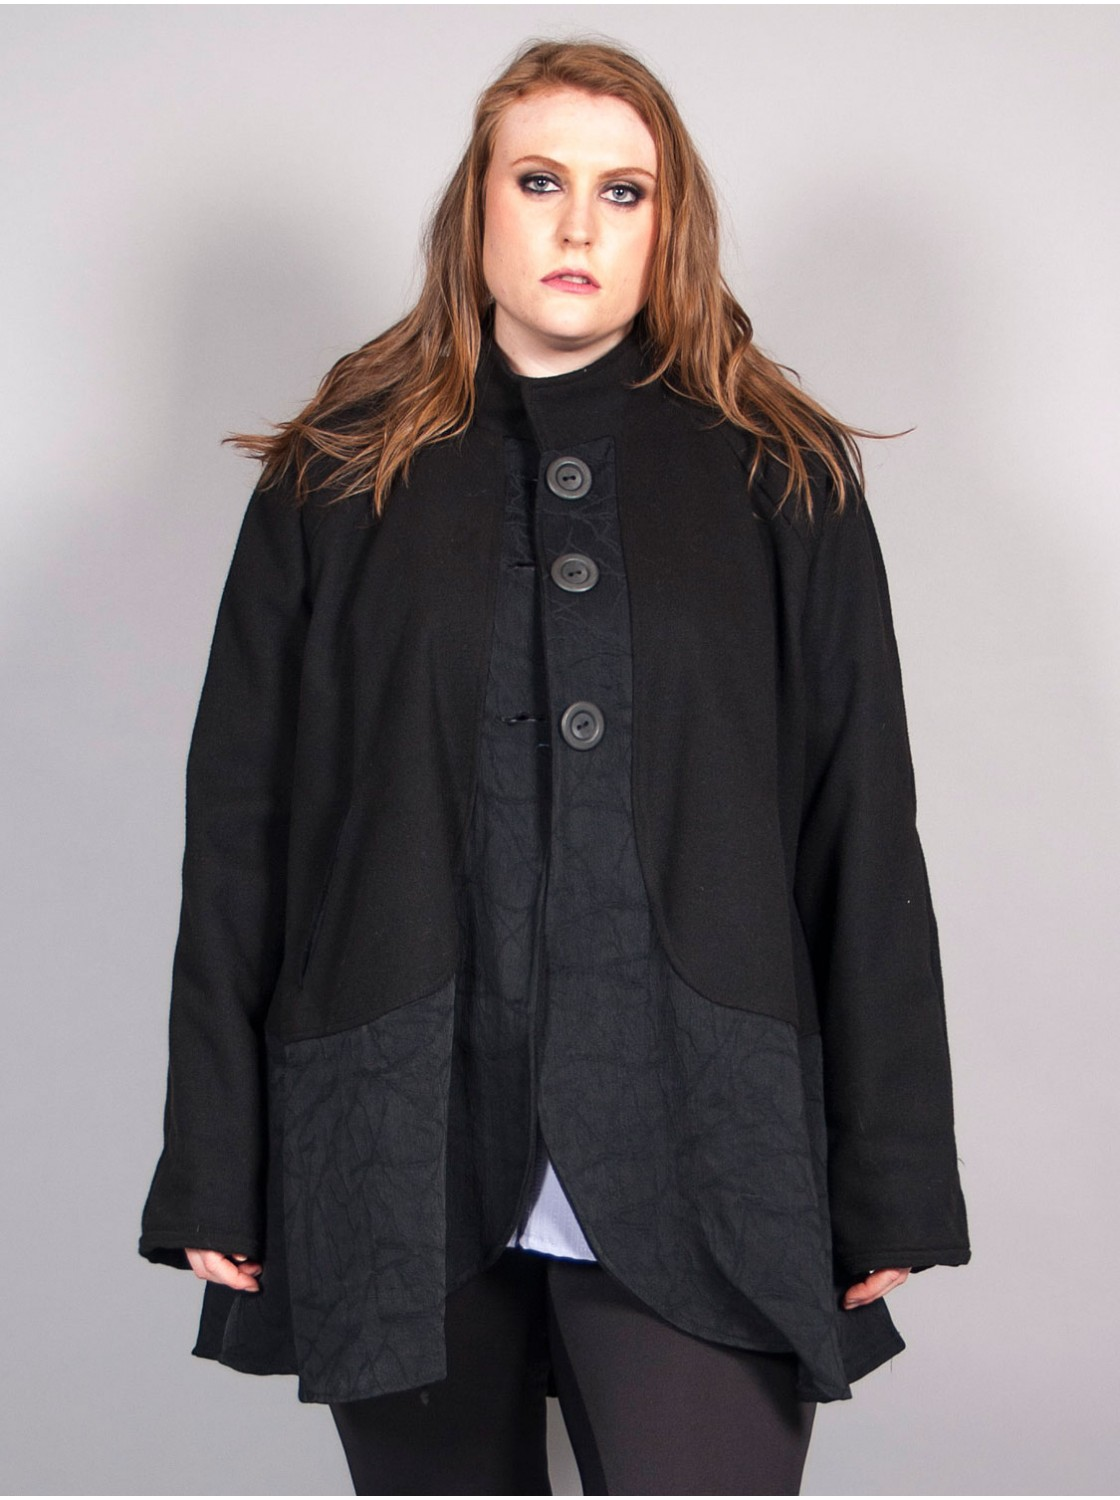 manteau trap232ze